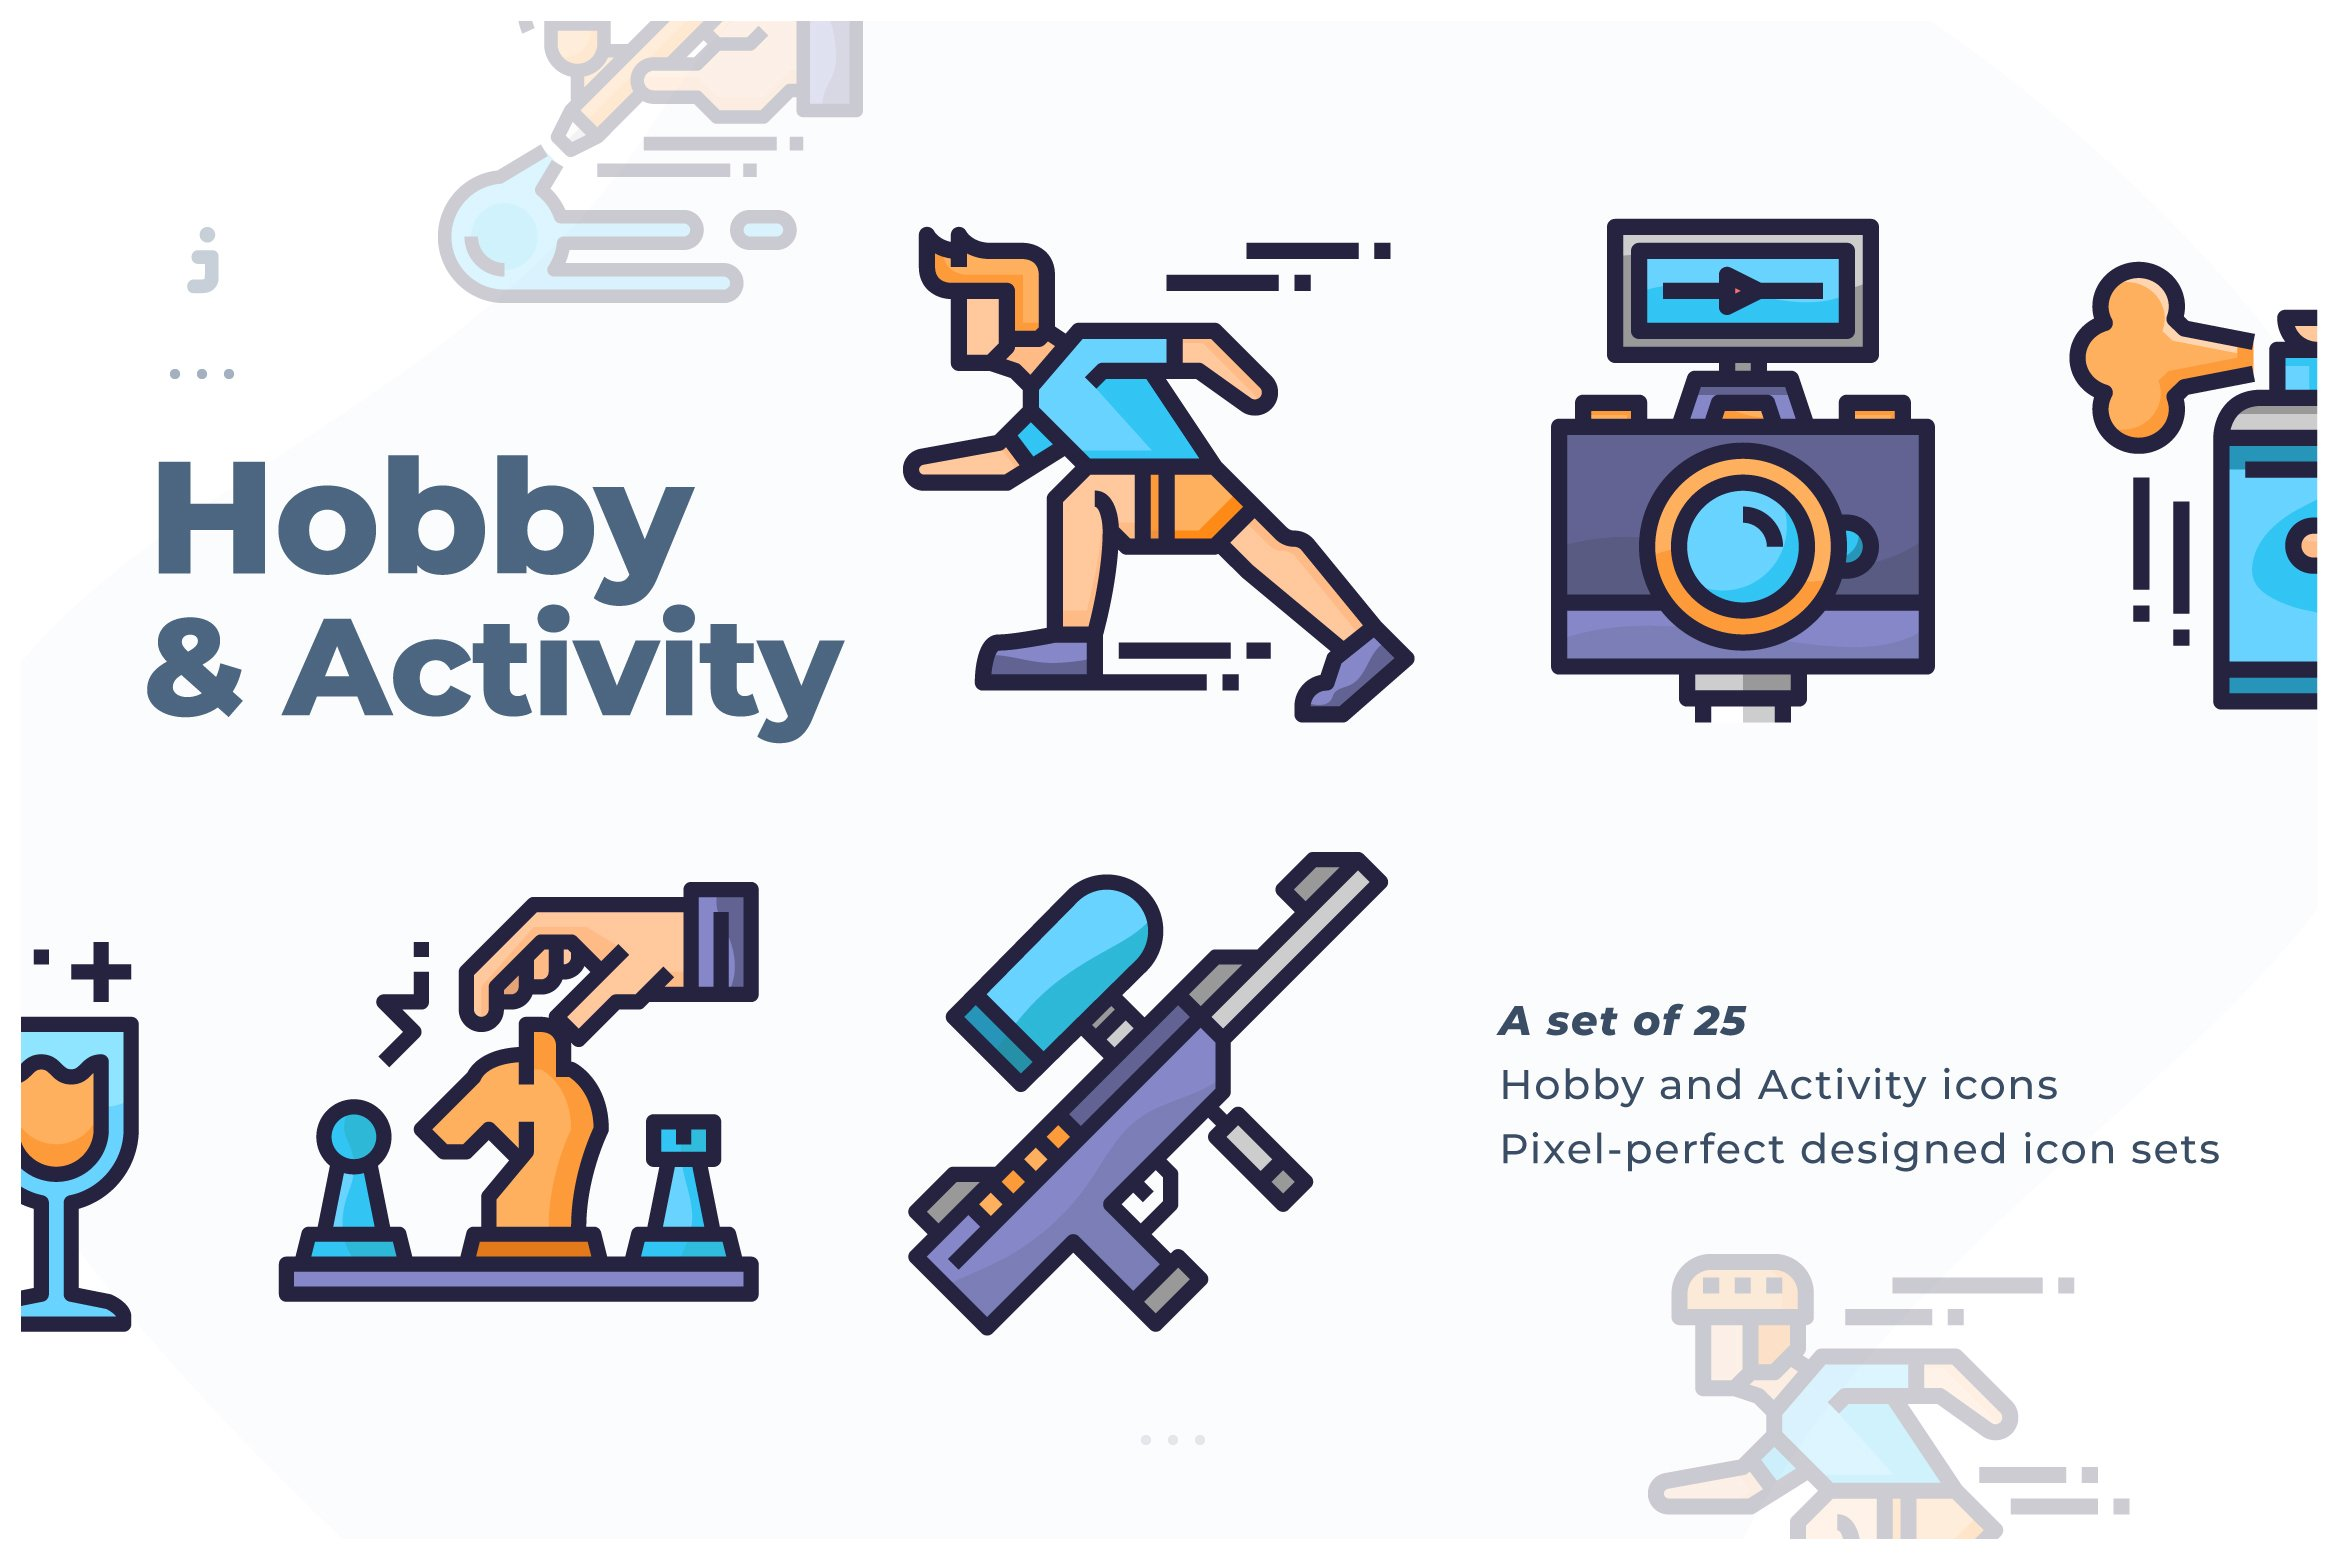 25 hobby and activity icon 216293 icons design bundles 25 hobby and activity icon